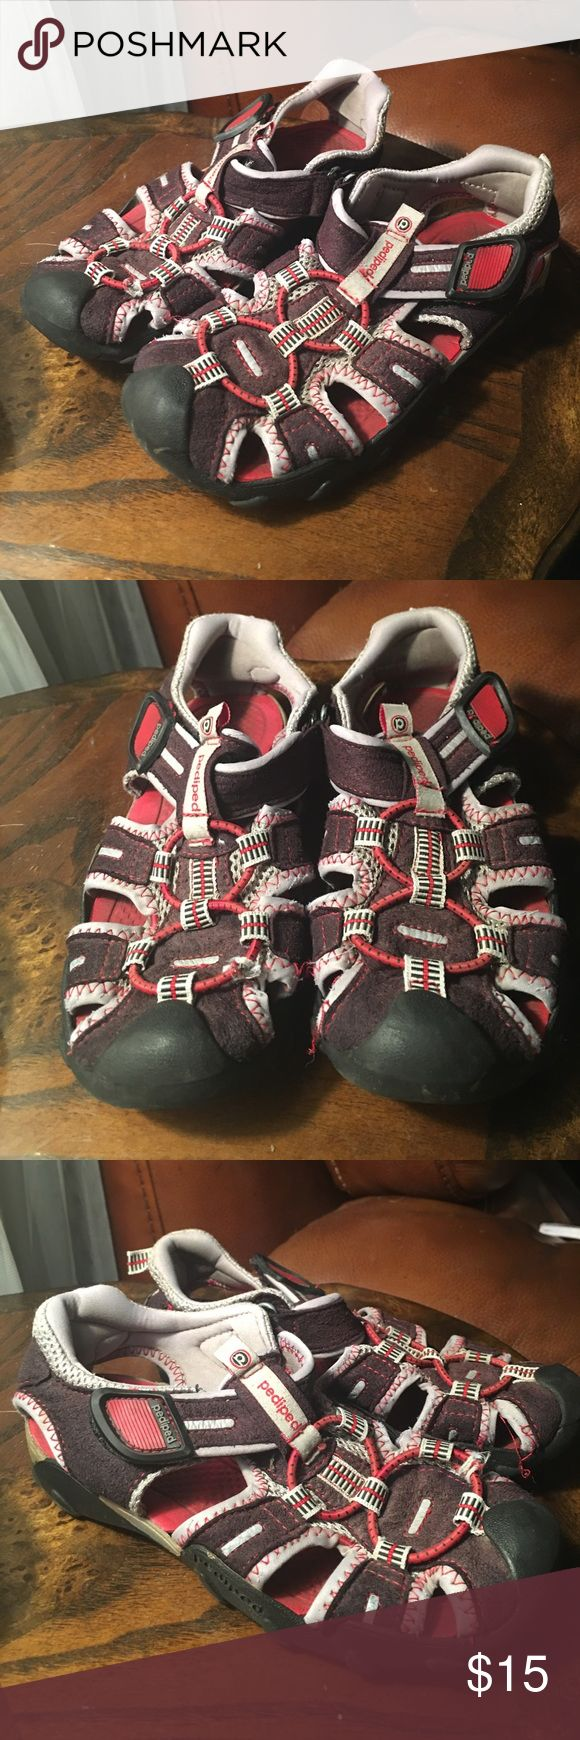 Closed toe medical walking shoe foot protection boot - Boys Closed Toe Sandal Pediped Black Red Size 12